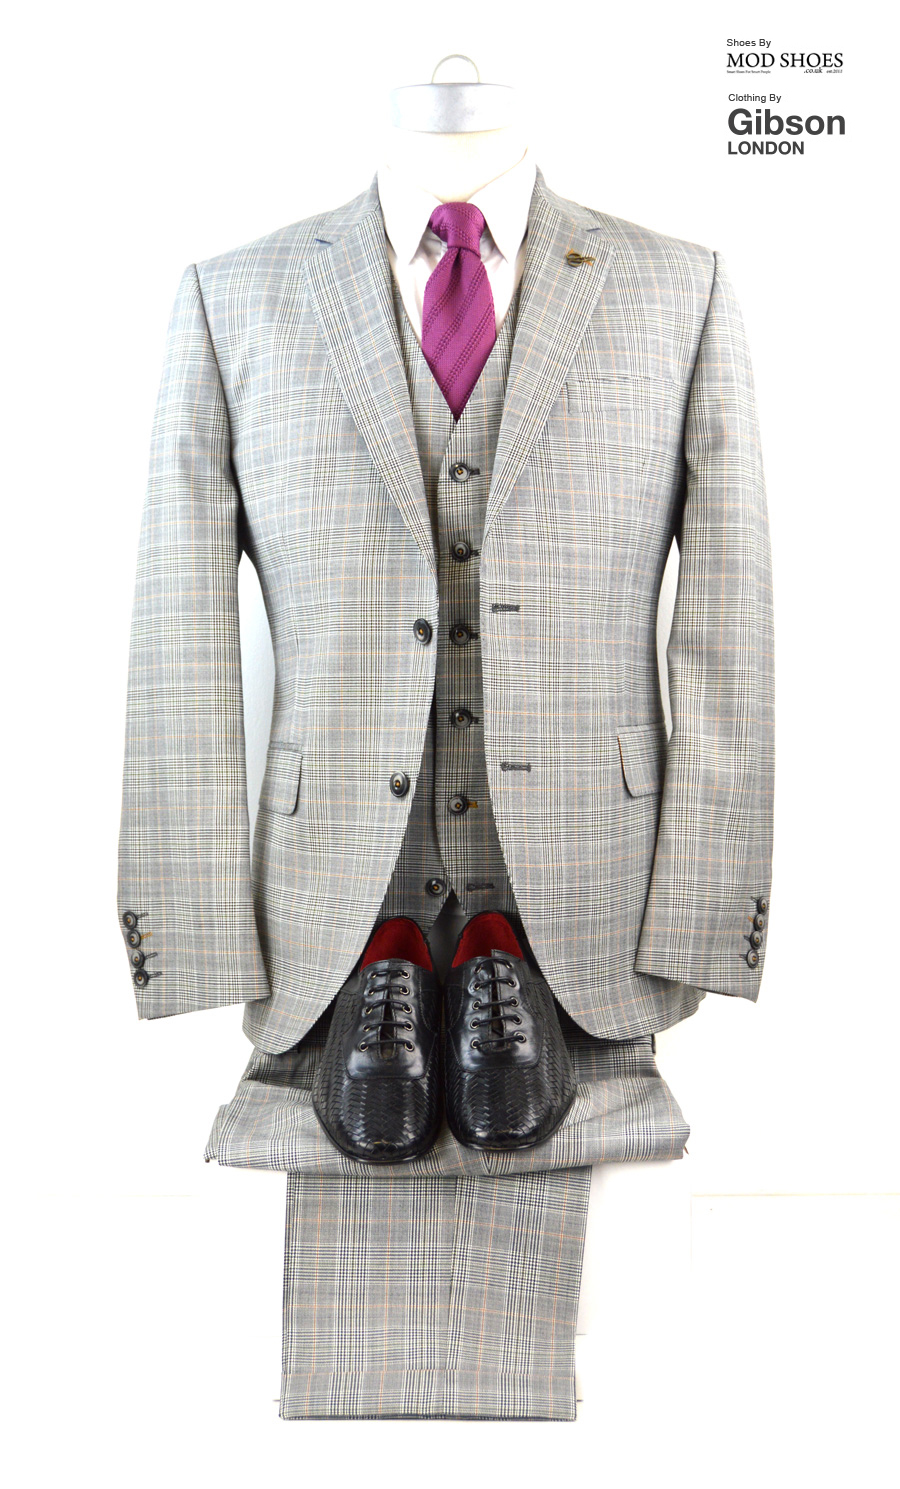 modshoes-with-prince-of-wales-suit-from-gibson-clothing-01